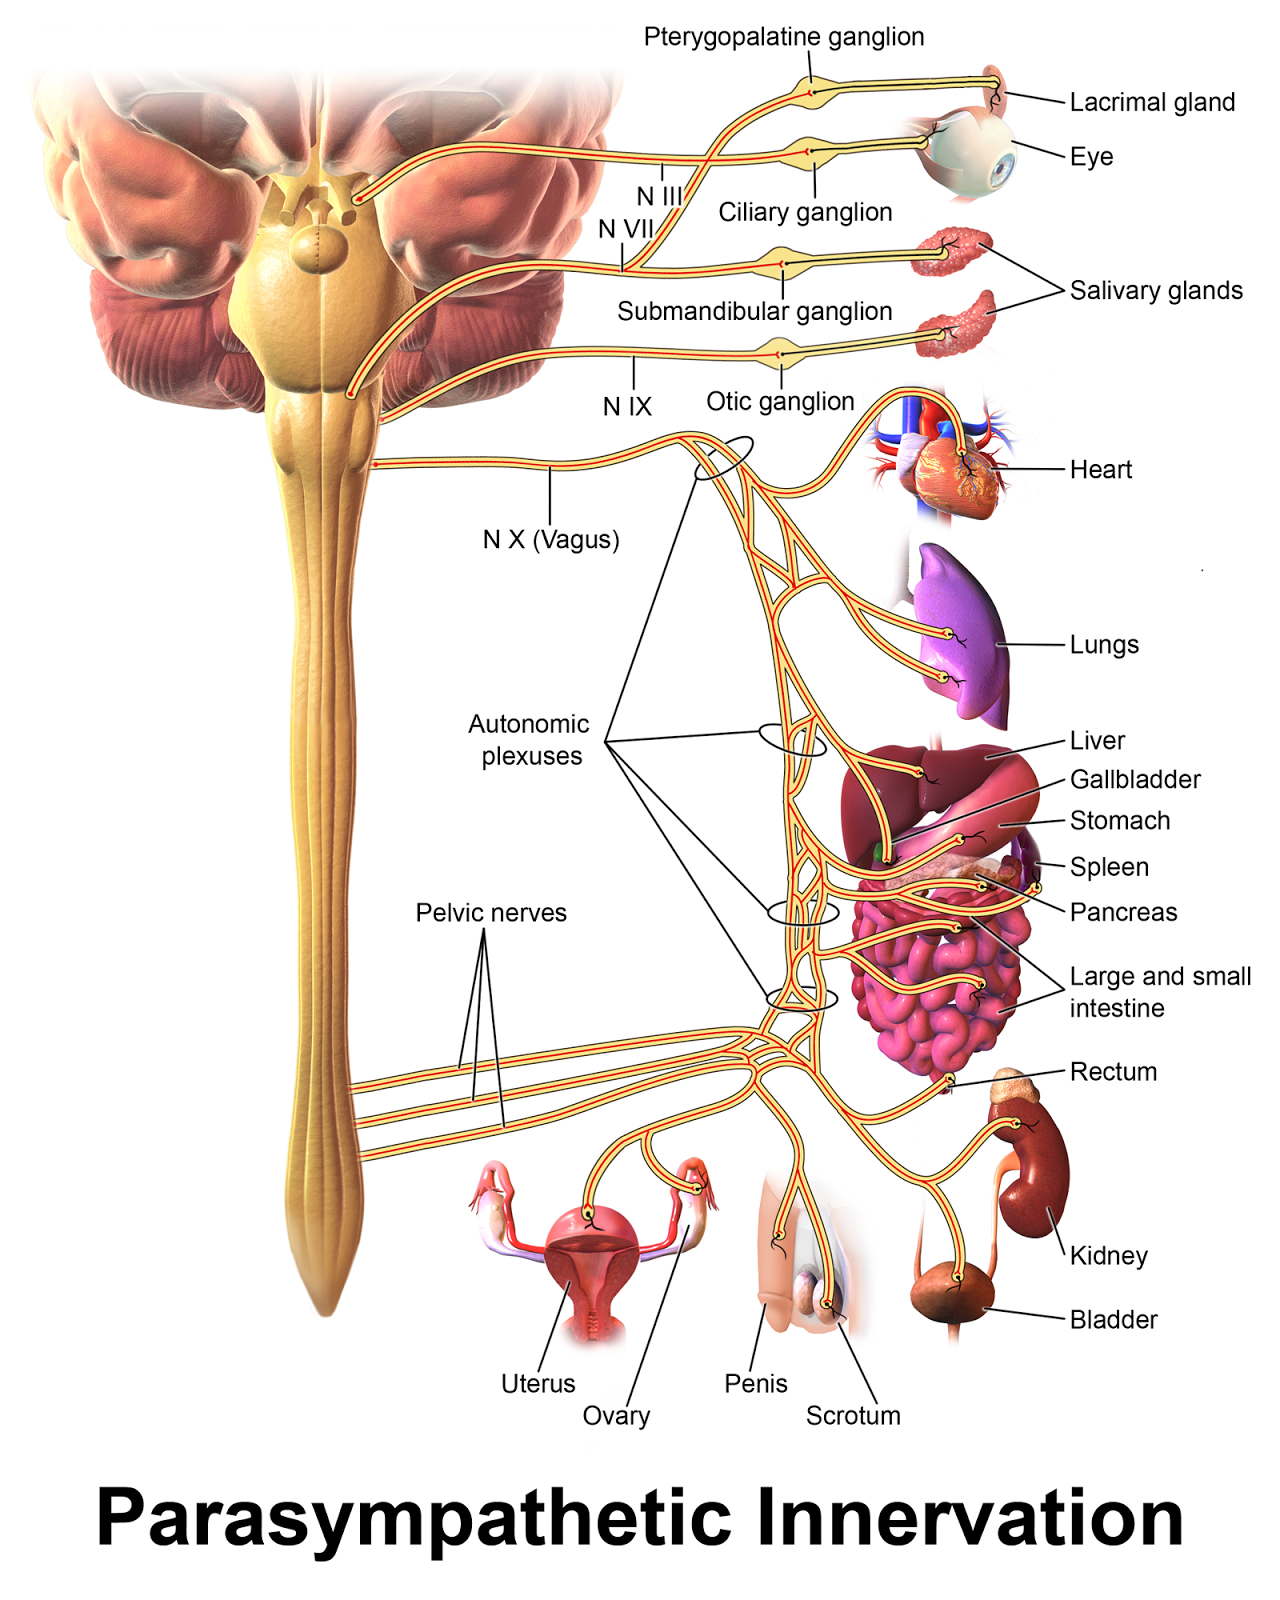 human anatomy and physiology diagrams parasympathetic nervous system [ 1280 x 1600 Pixel ]